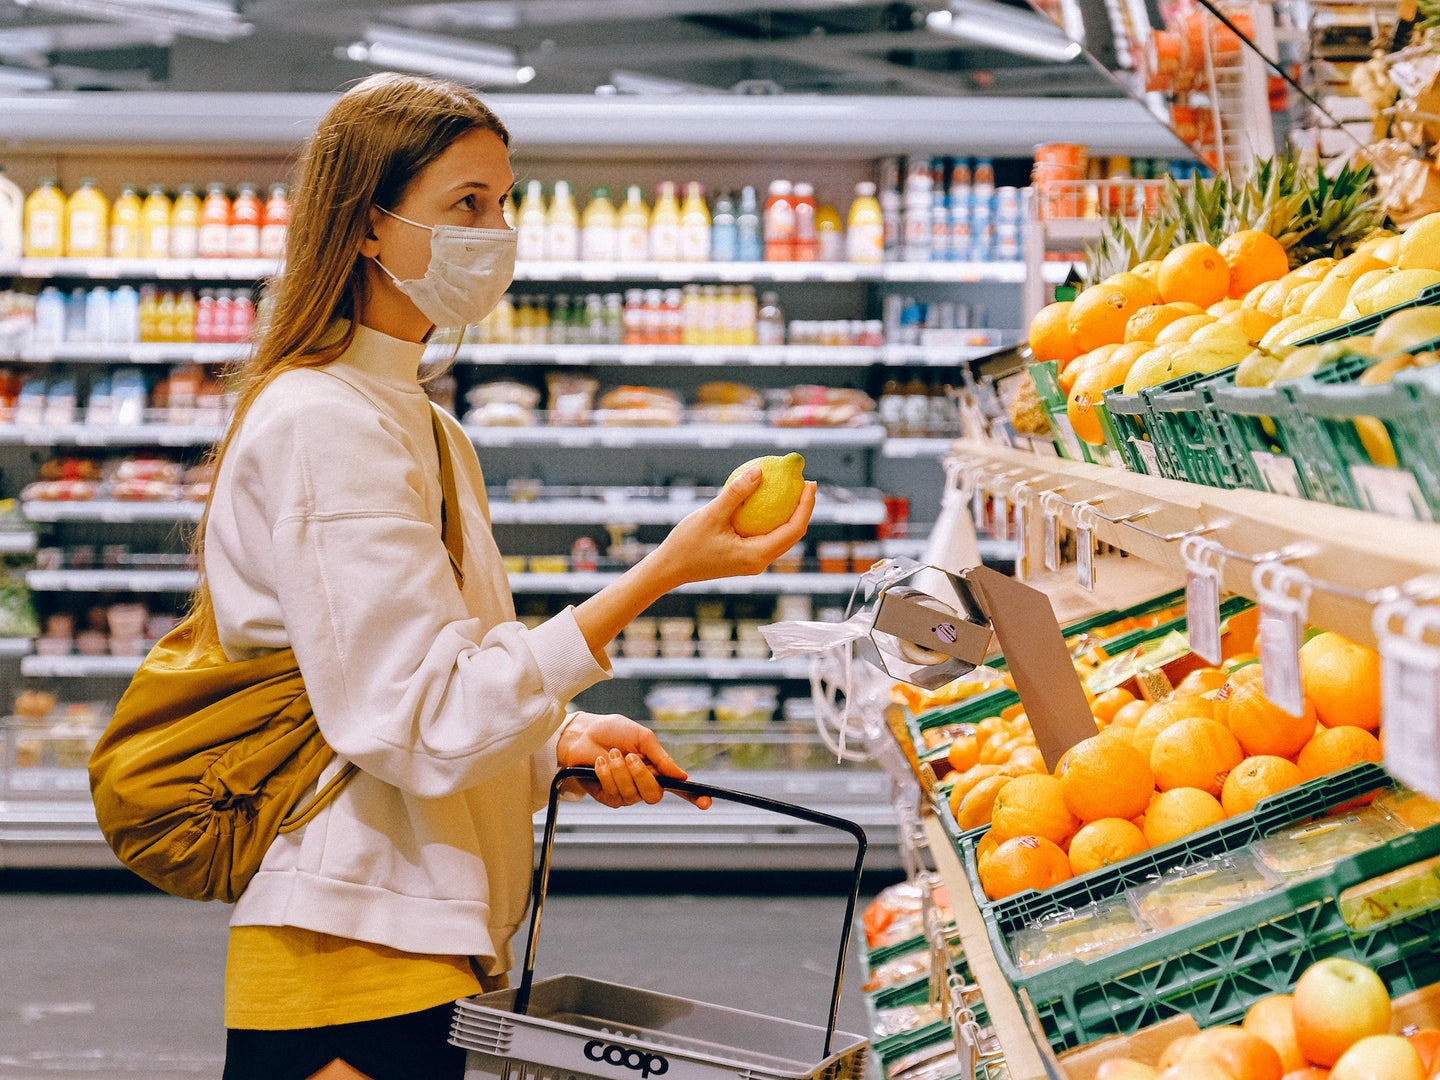 woman shopping with face mask on